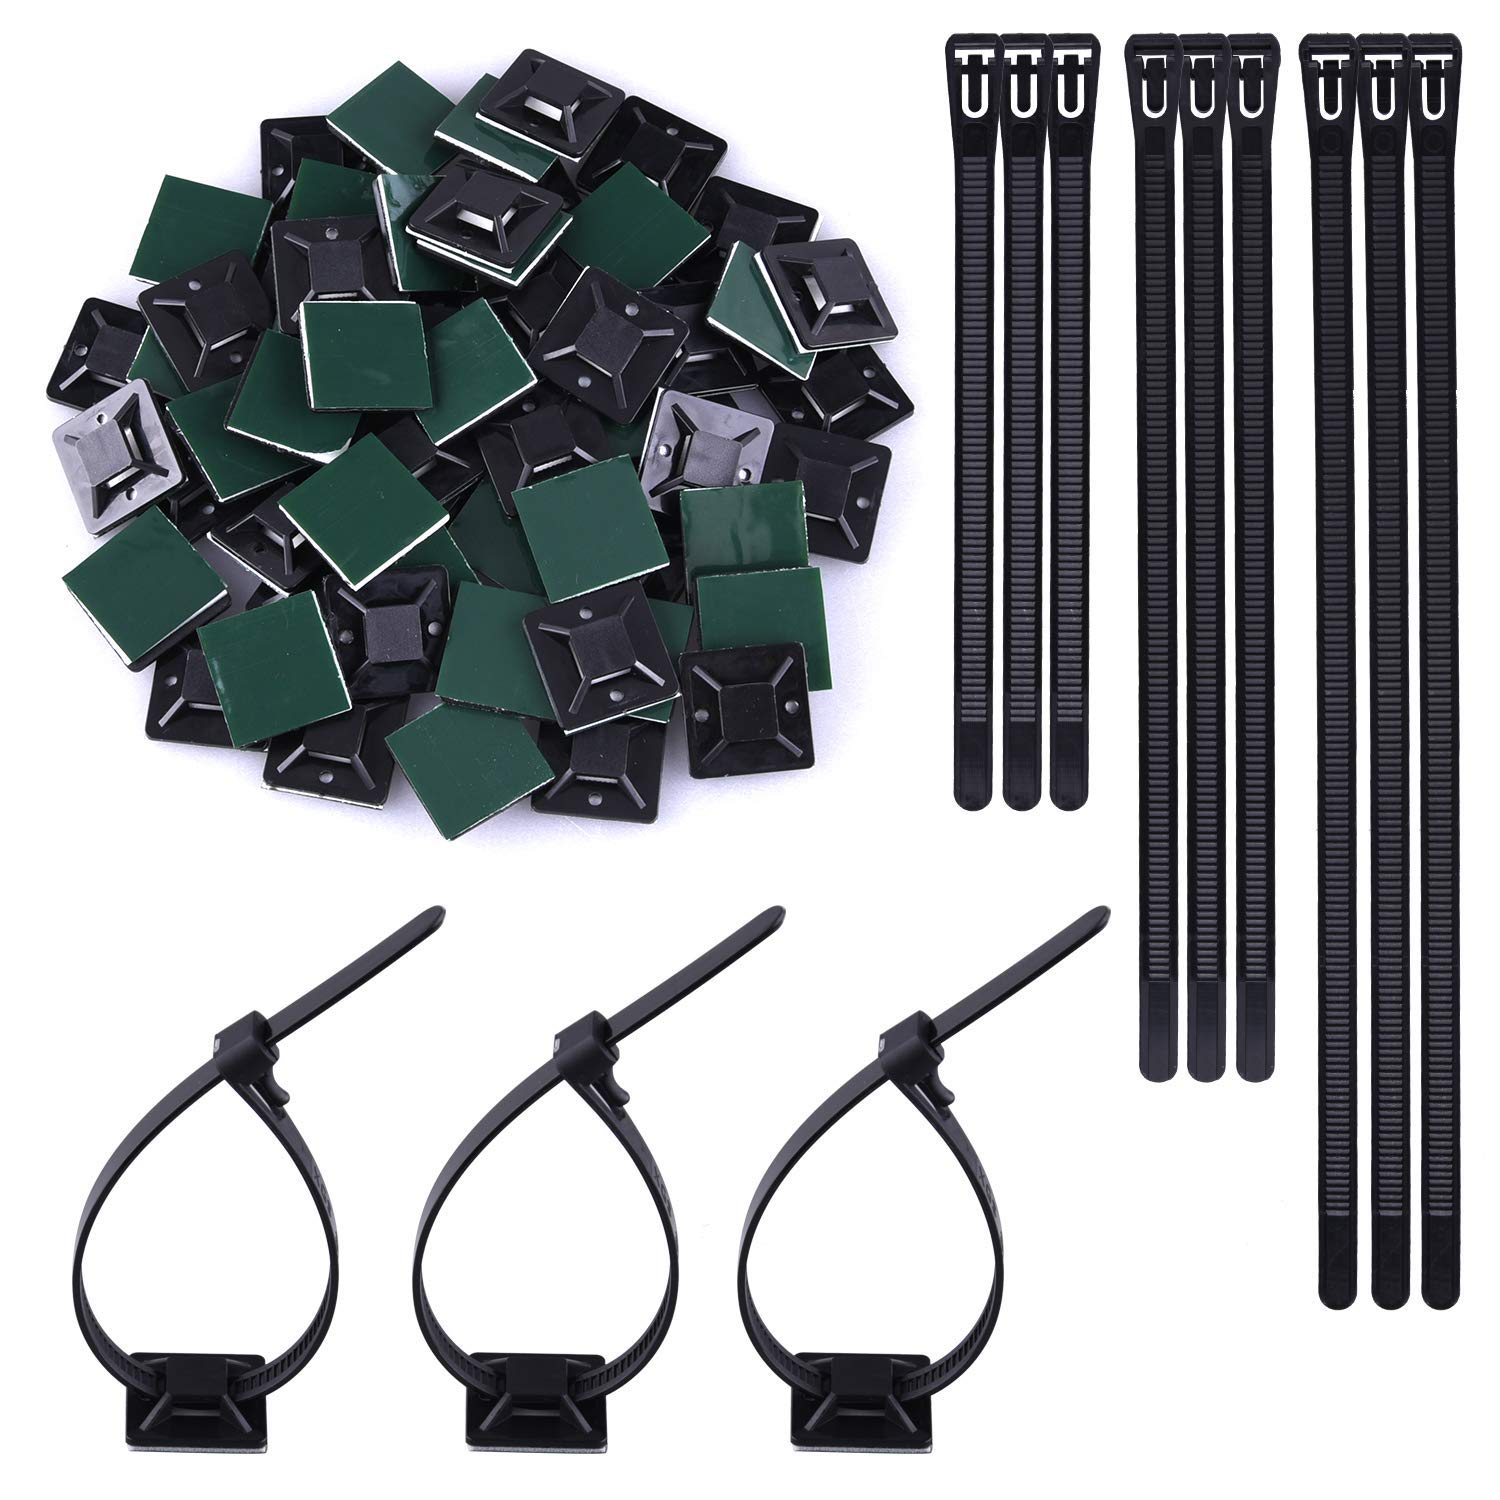 SIQUK 120 Pieces Zip Ties Reusable Nylon Cable Ties 6/8/10 Inch Black Tie Wraps 0.28 Inch Width Heavy Duty Zip Tie with 60 Pieces Self Adhesive Zip Tie Mounts